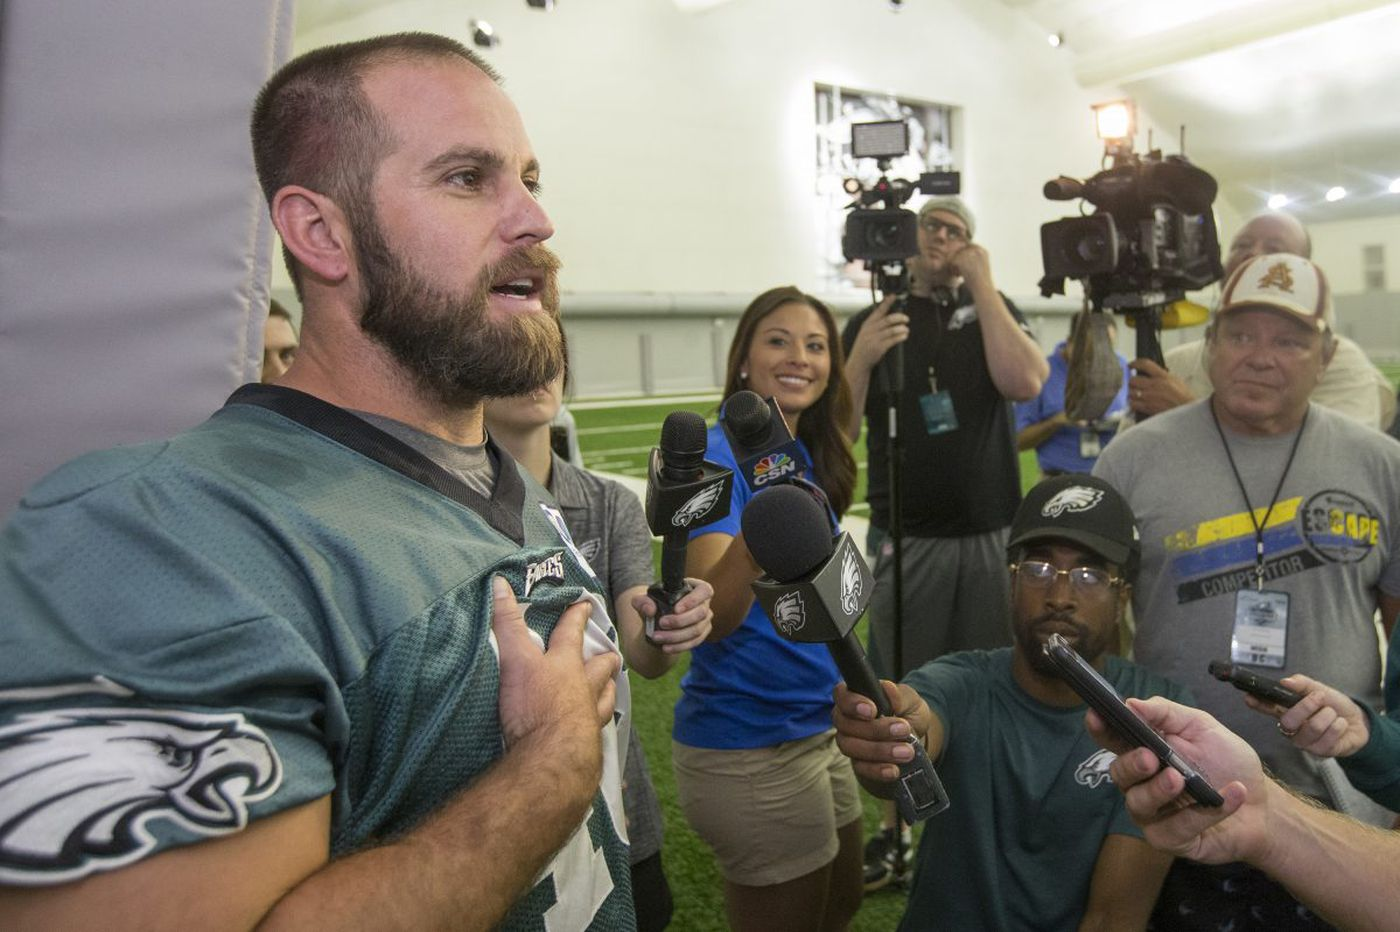 Movie based on Jon Dorenbos' life coming quicker thanks to Eagles' Super Bowl victory